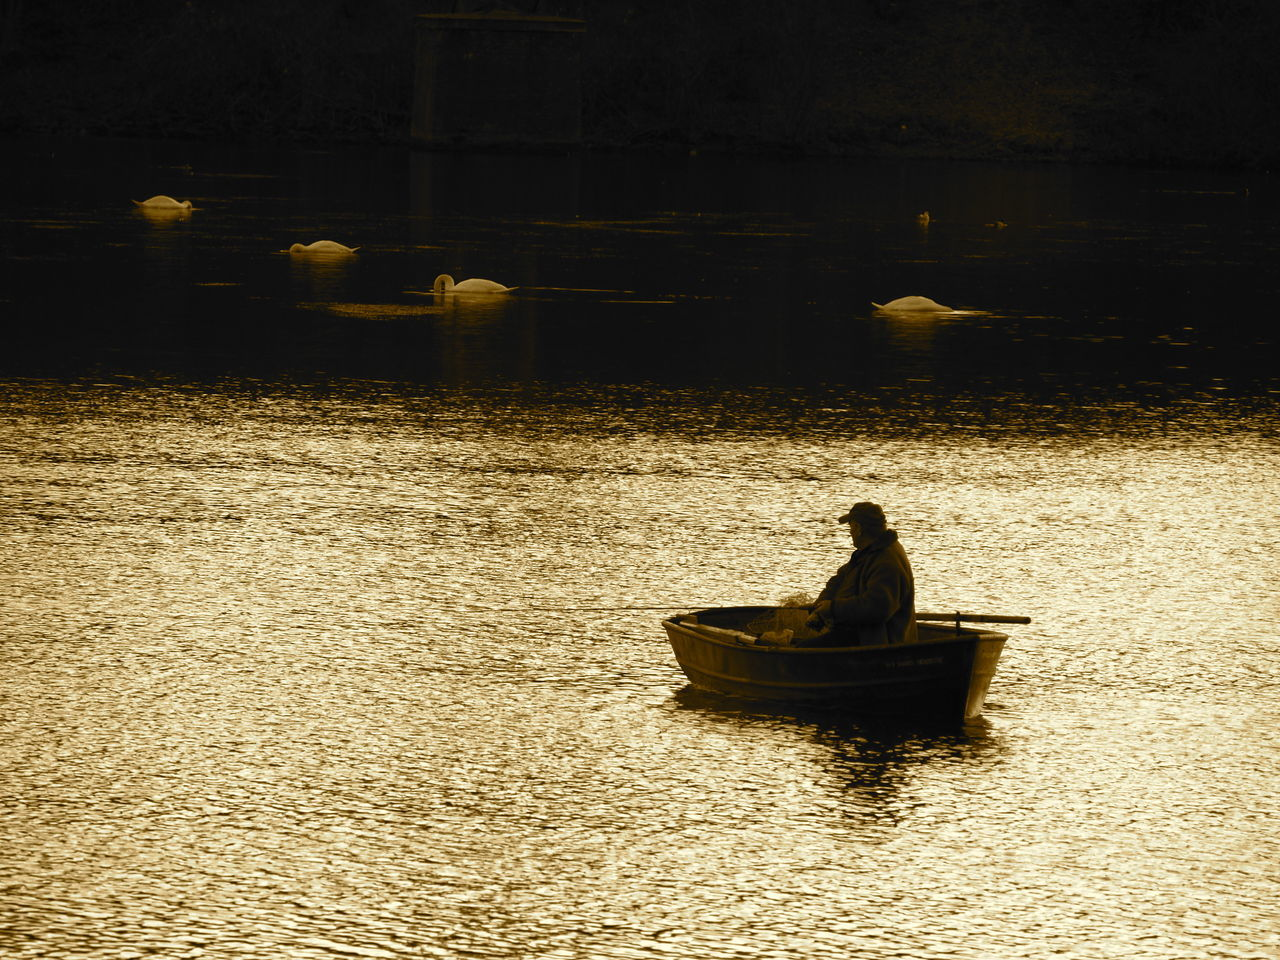 water, real people, waterfront, one person, men, nautical vessel, night, silhouette, river, outdoors, lifestyles, transportation, leisure activity, nature, standing, people